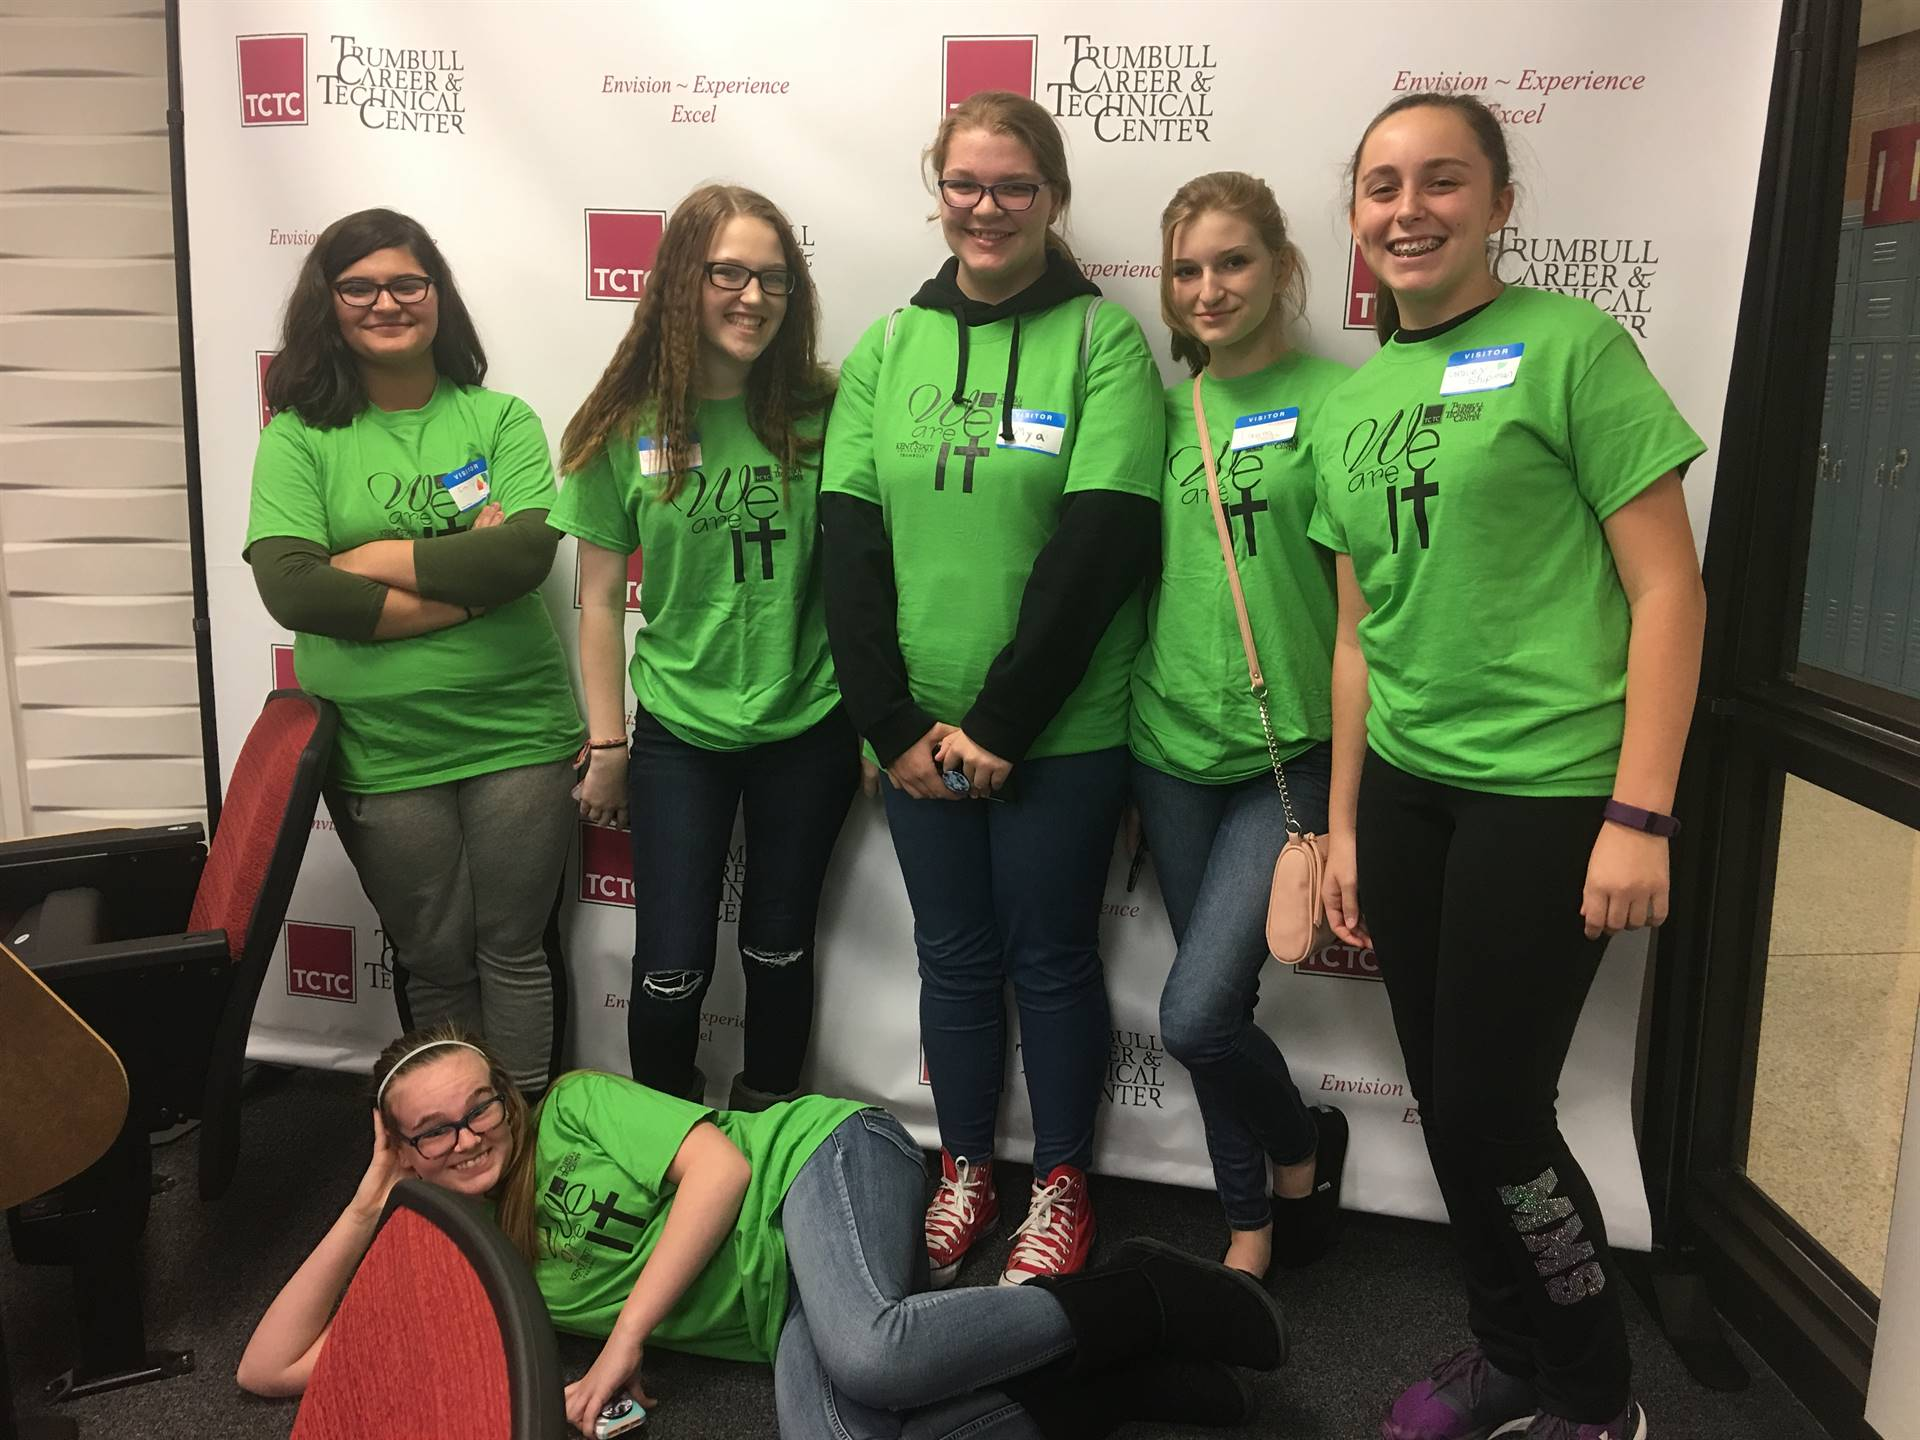 """8th grade girls at """"We are IT!"""" day at the TCTC"""